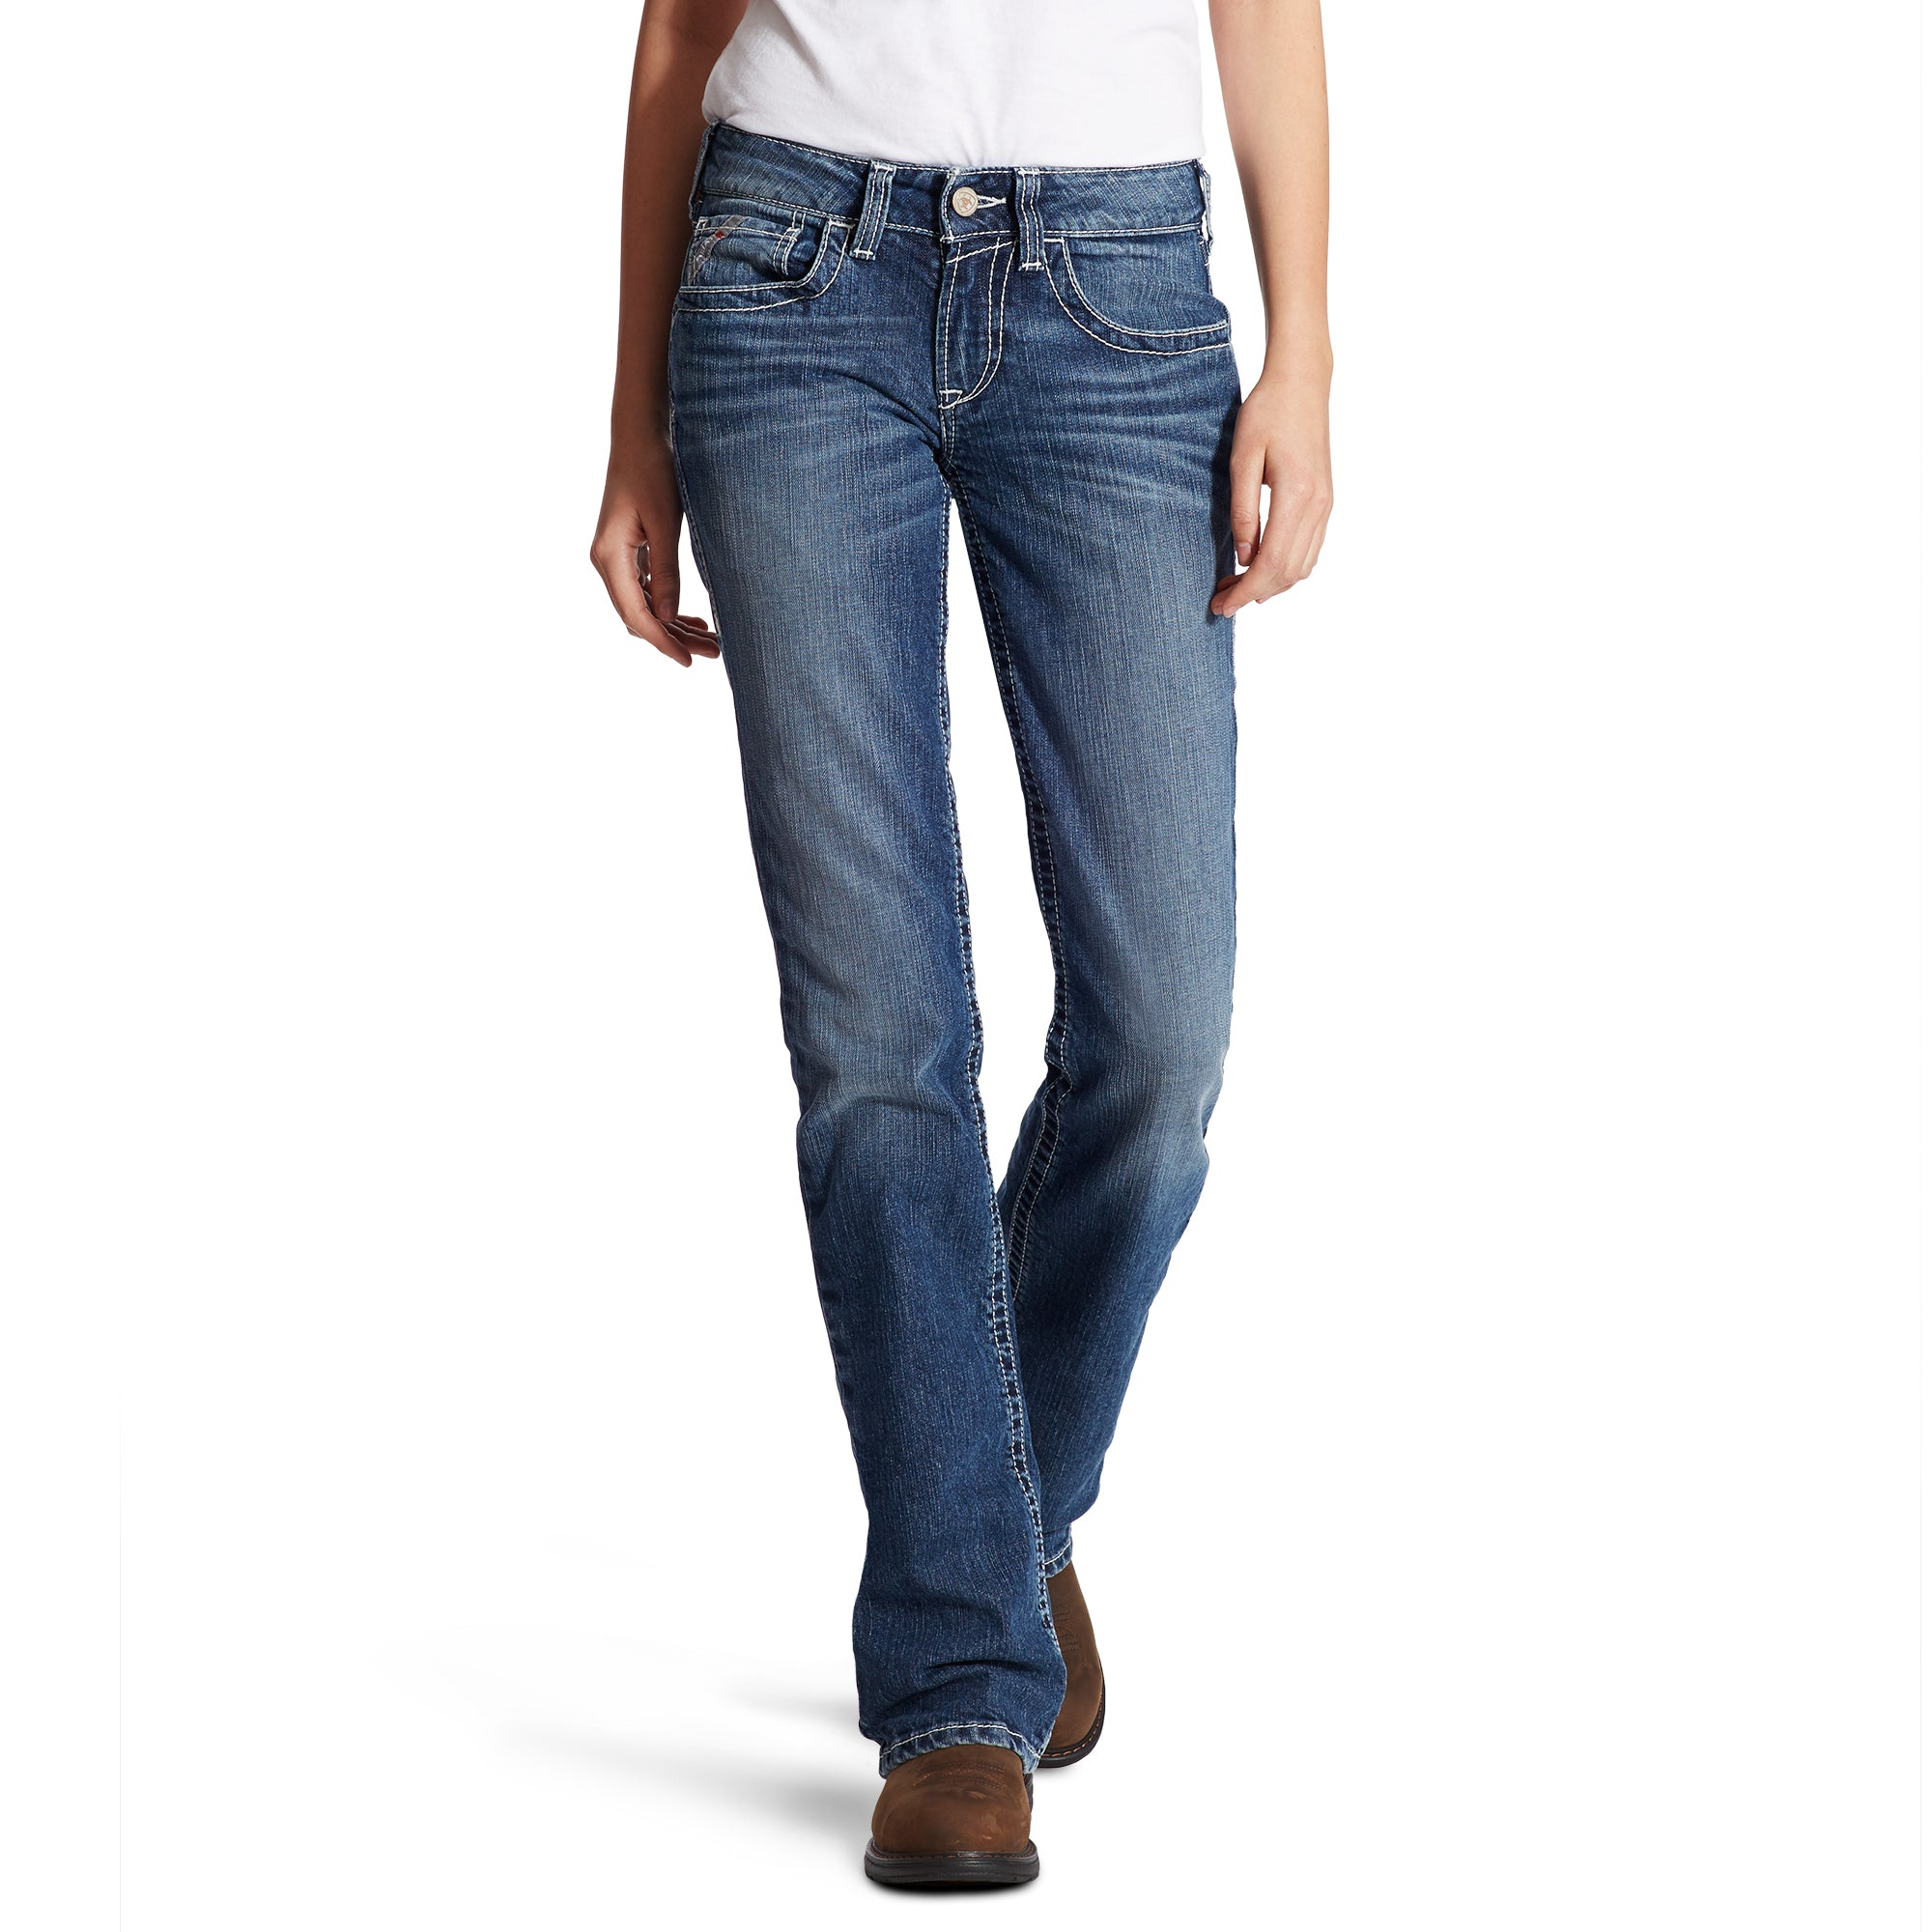 Women's Ariat Work FR Jeans - Oceanside